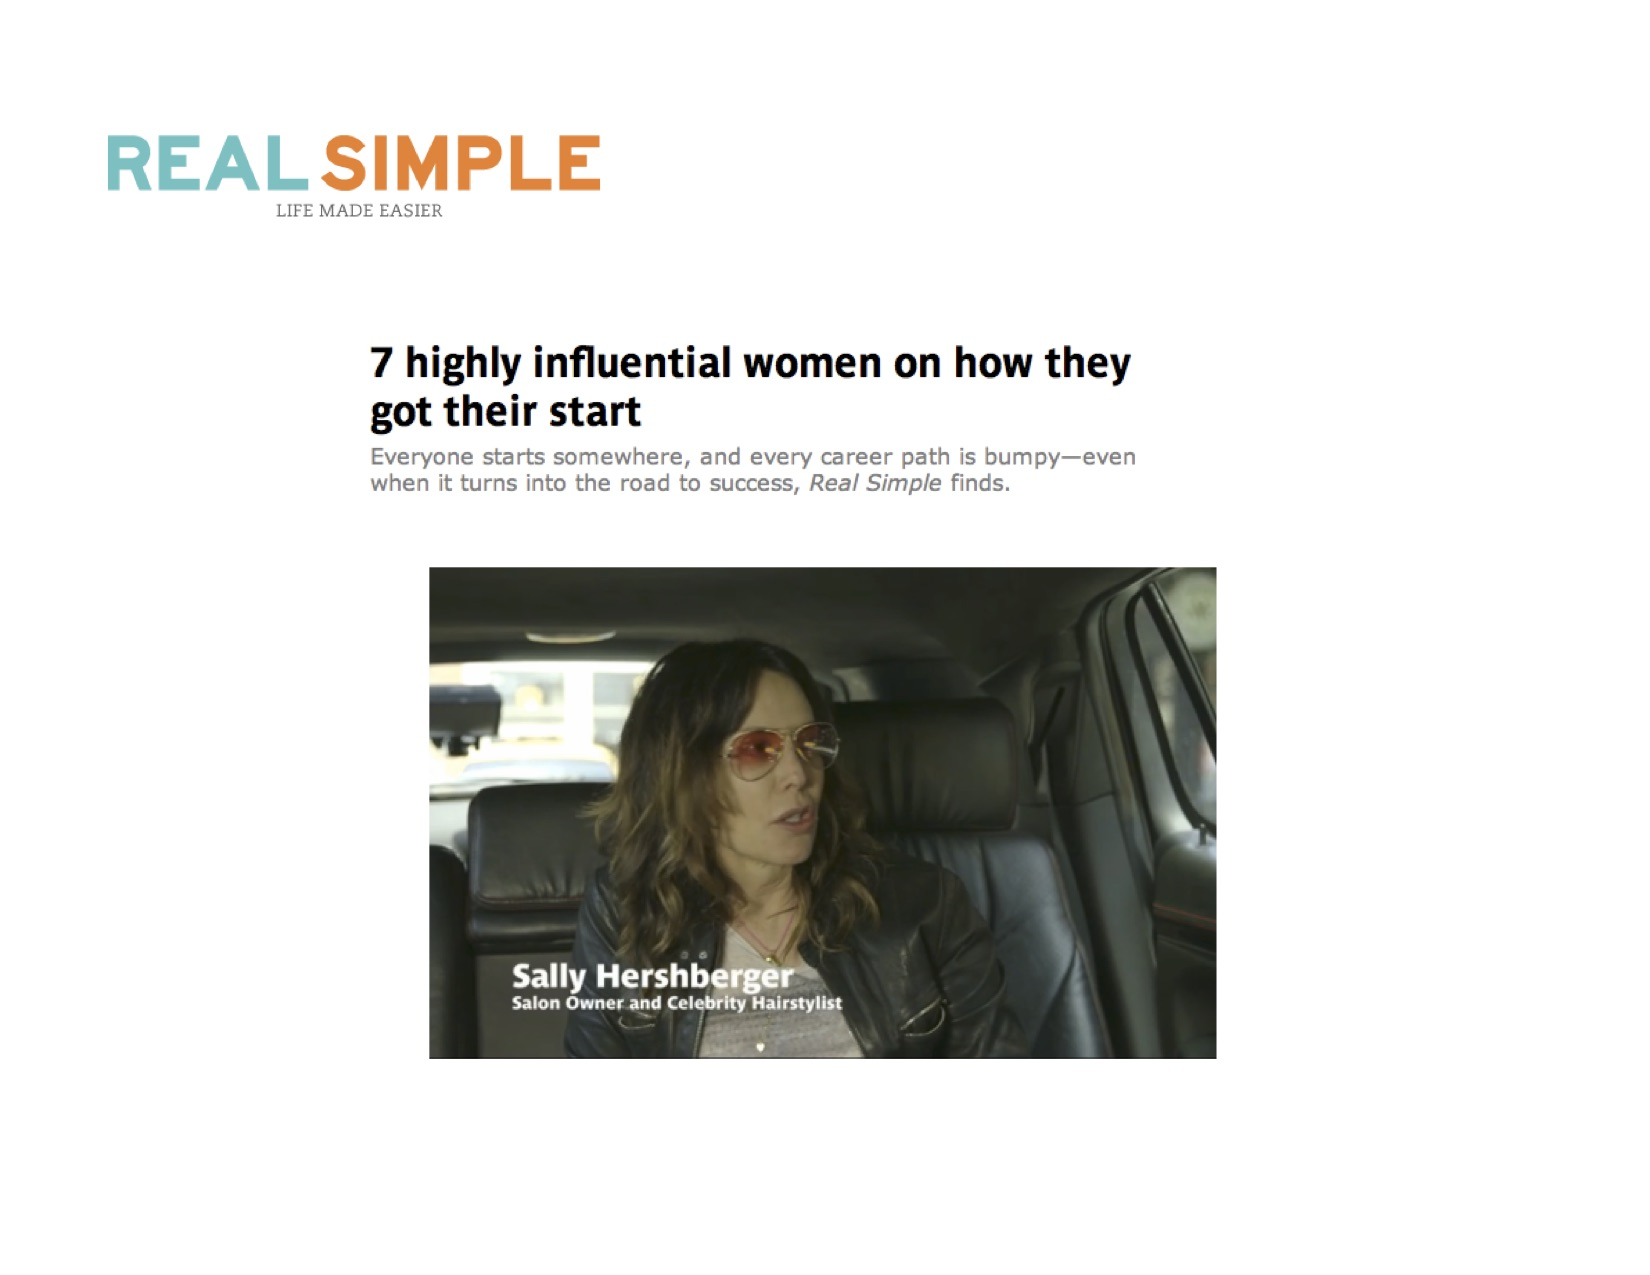 Sally Hershberger - Realsimple.com#4 - August 2014.jpeg